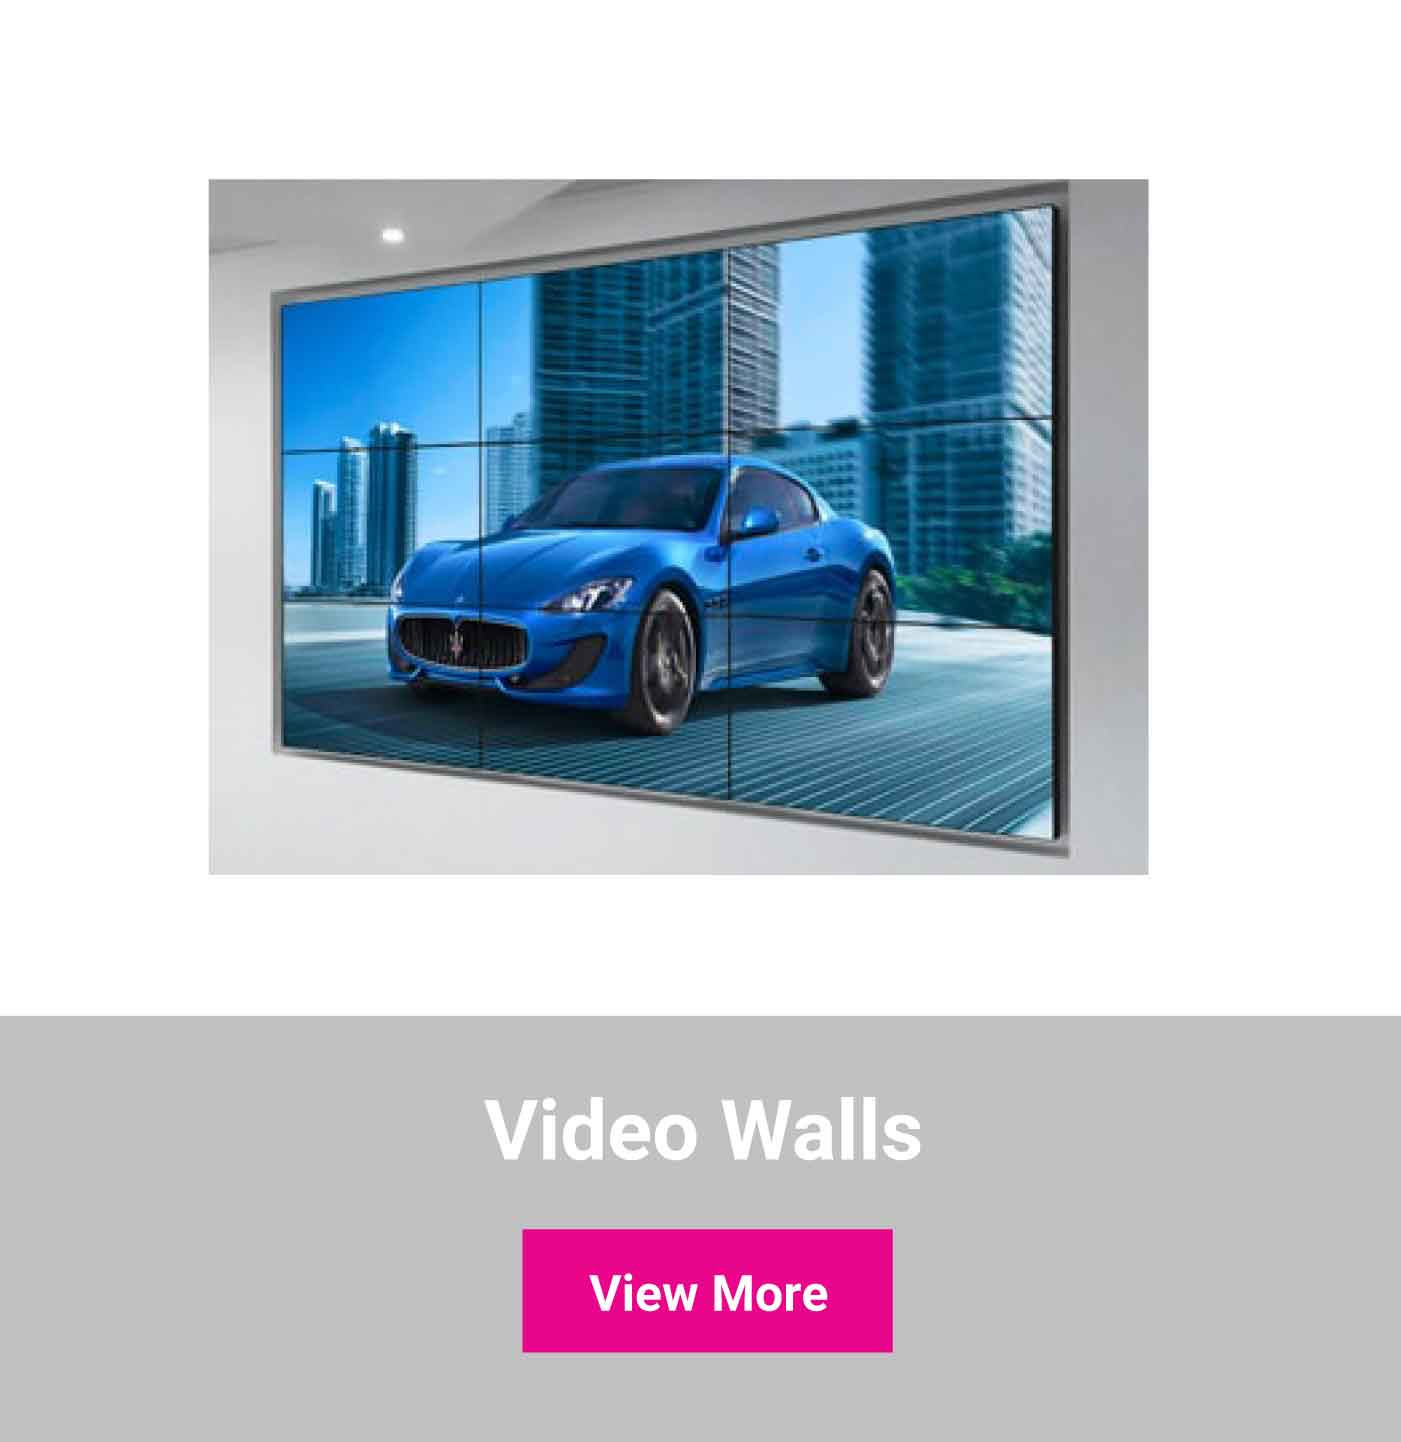 Shop video walls